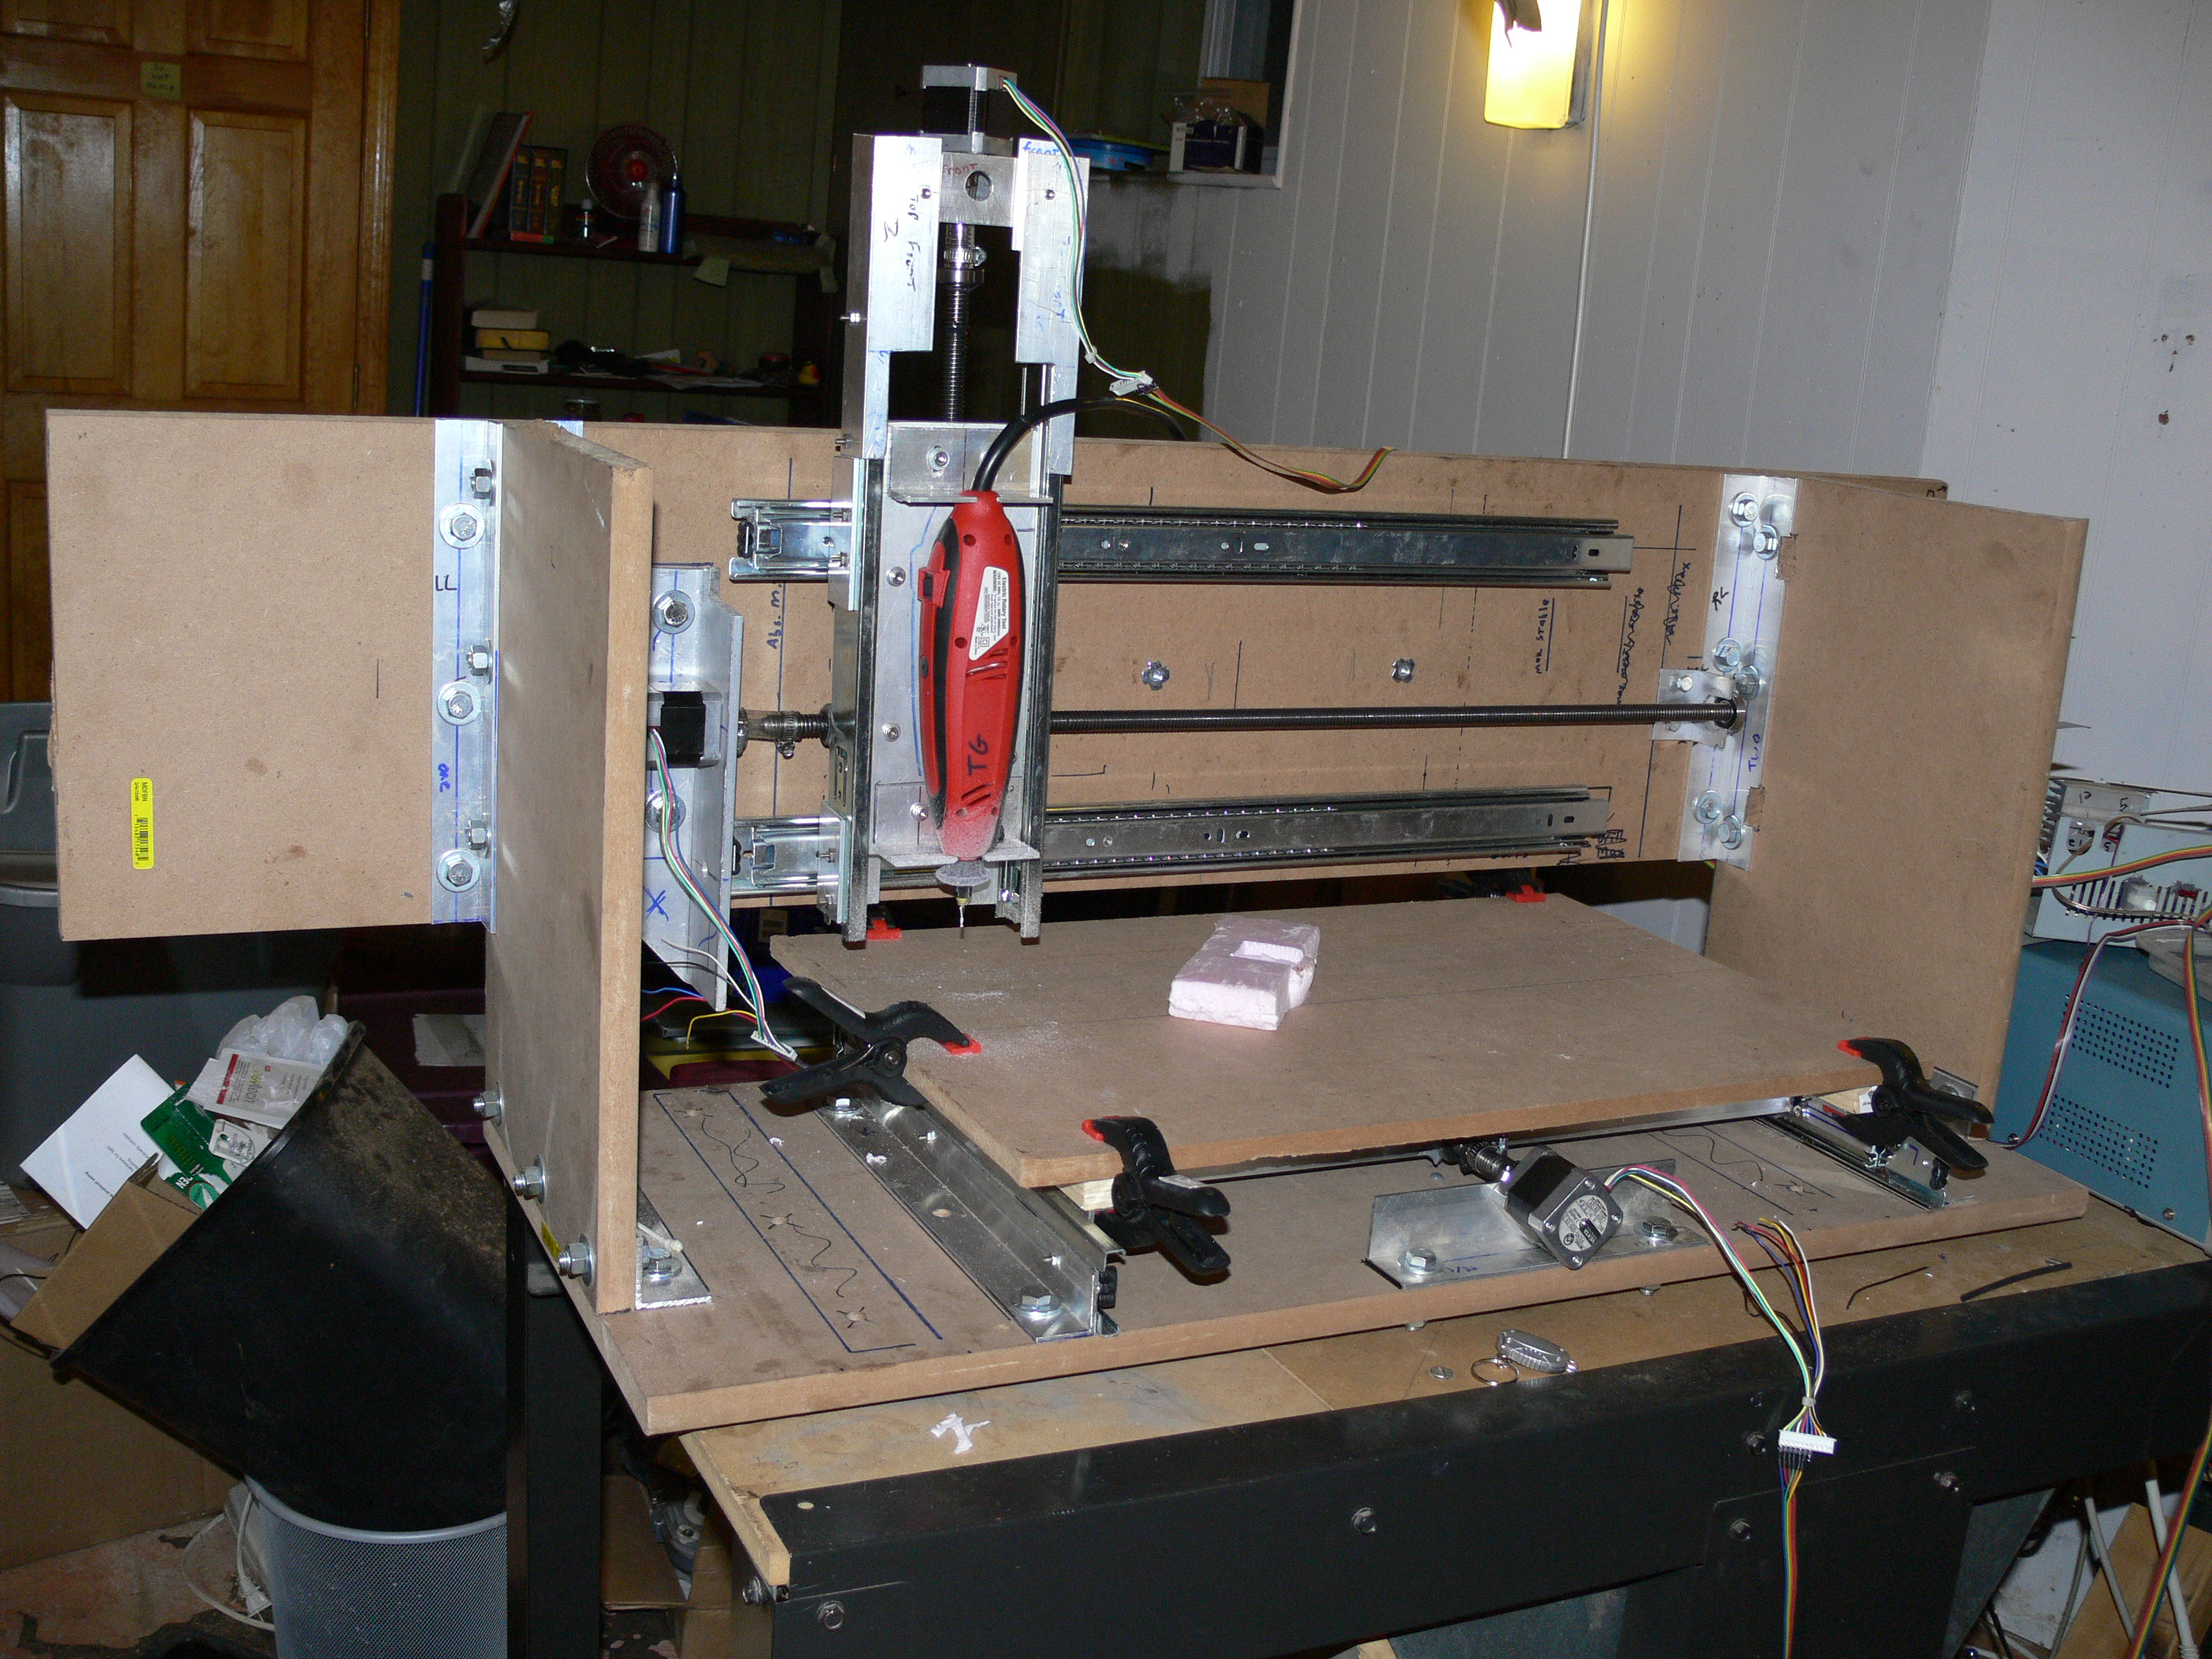 Steppin' Razor: Yet Another Cheap DIY, Homebrew CNC ...